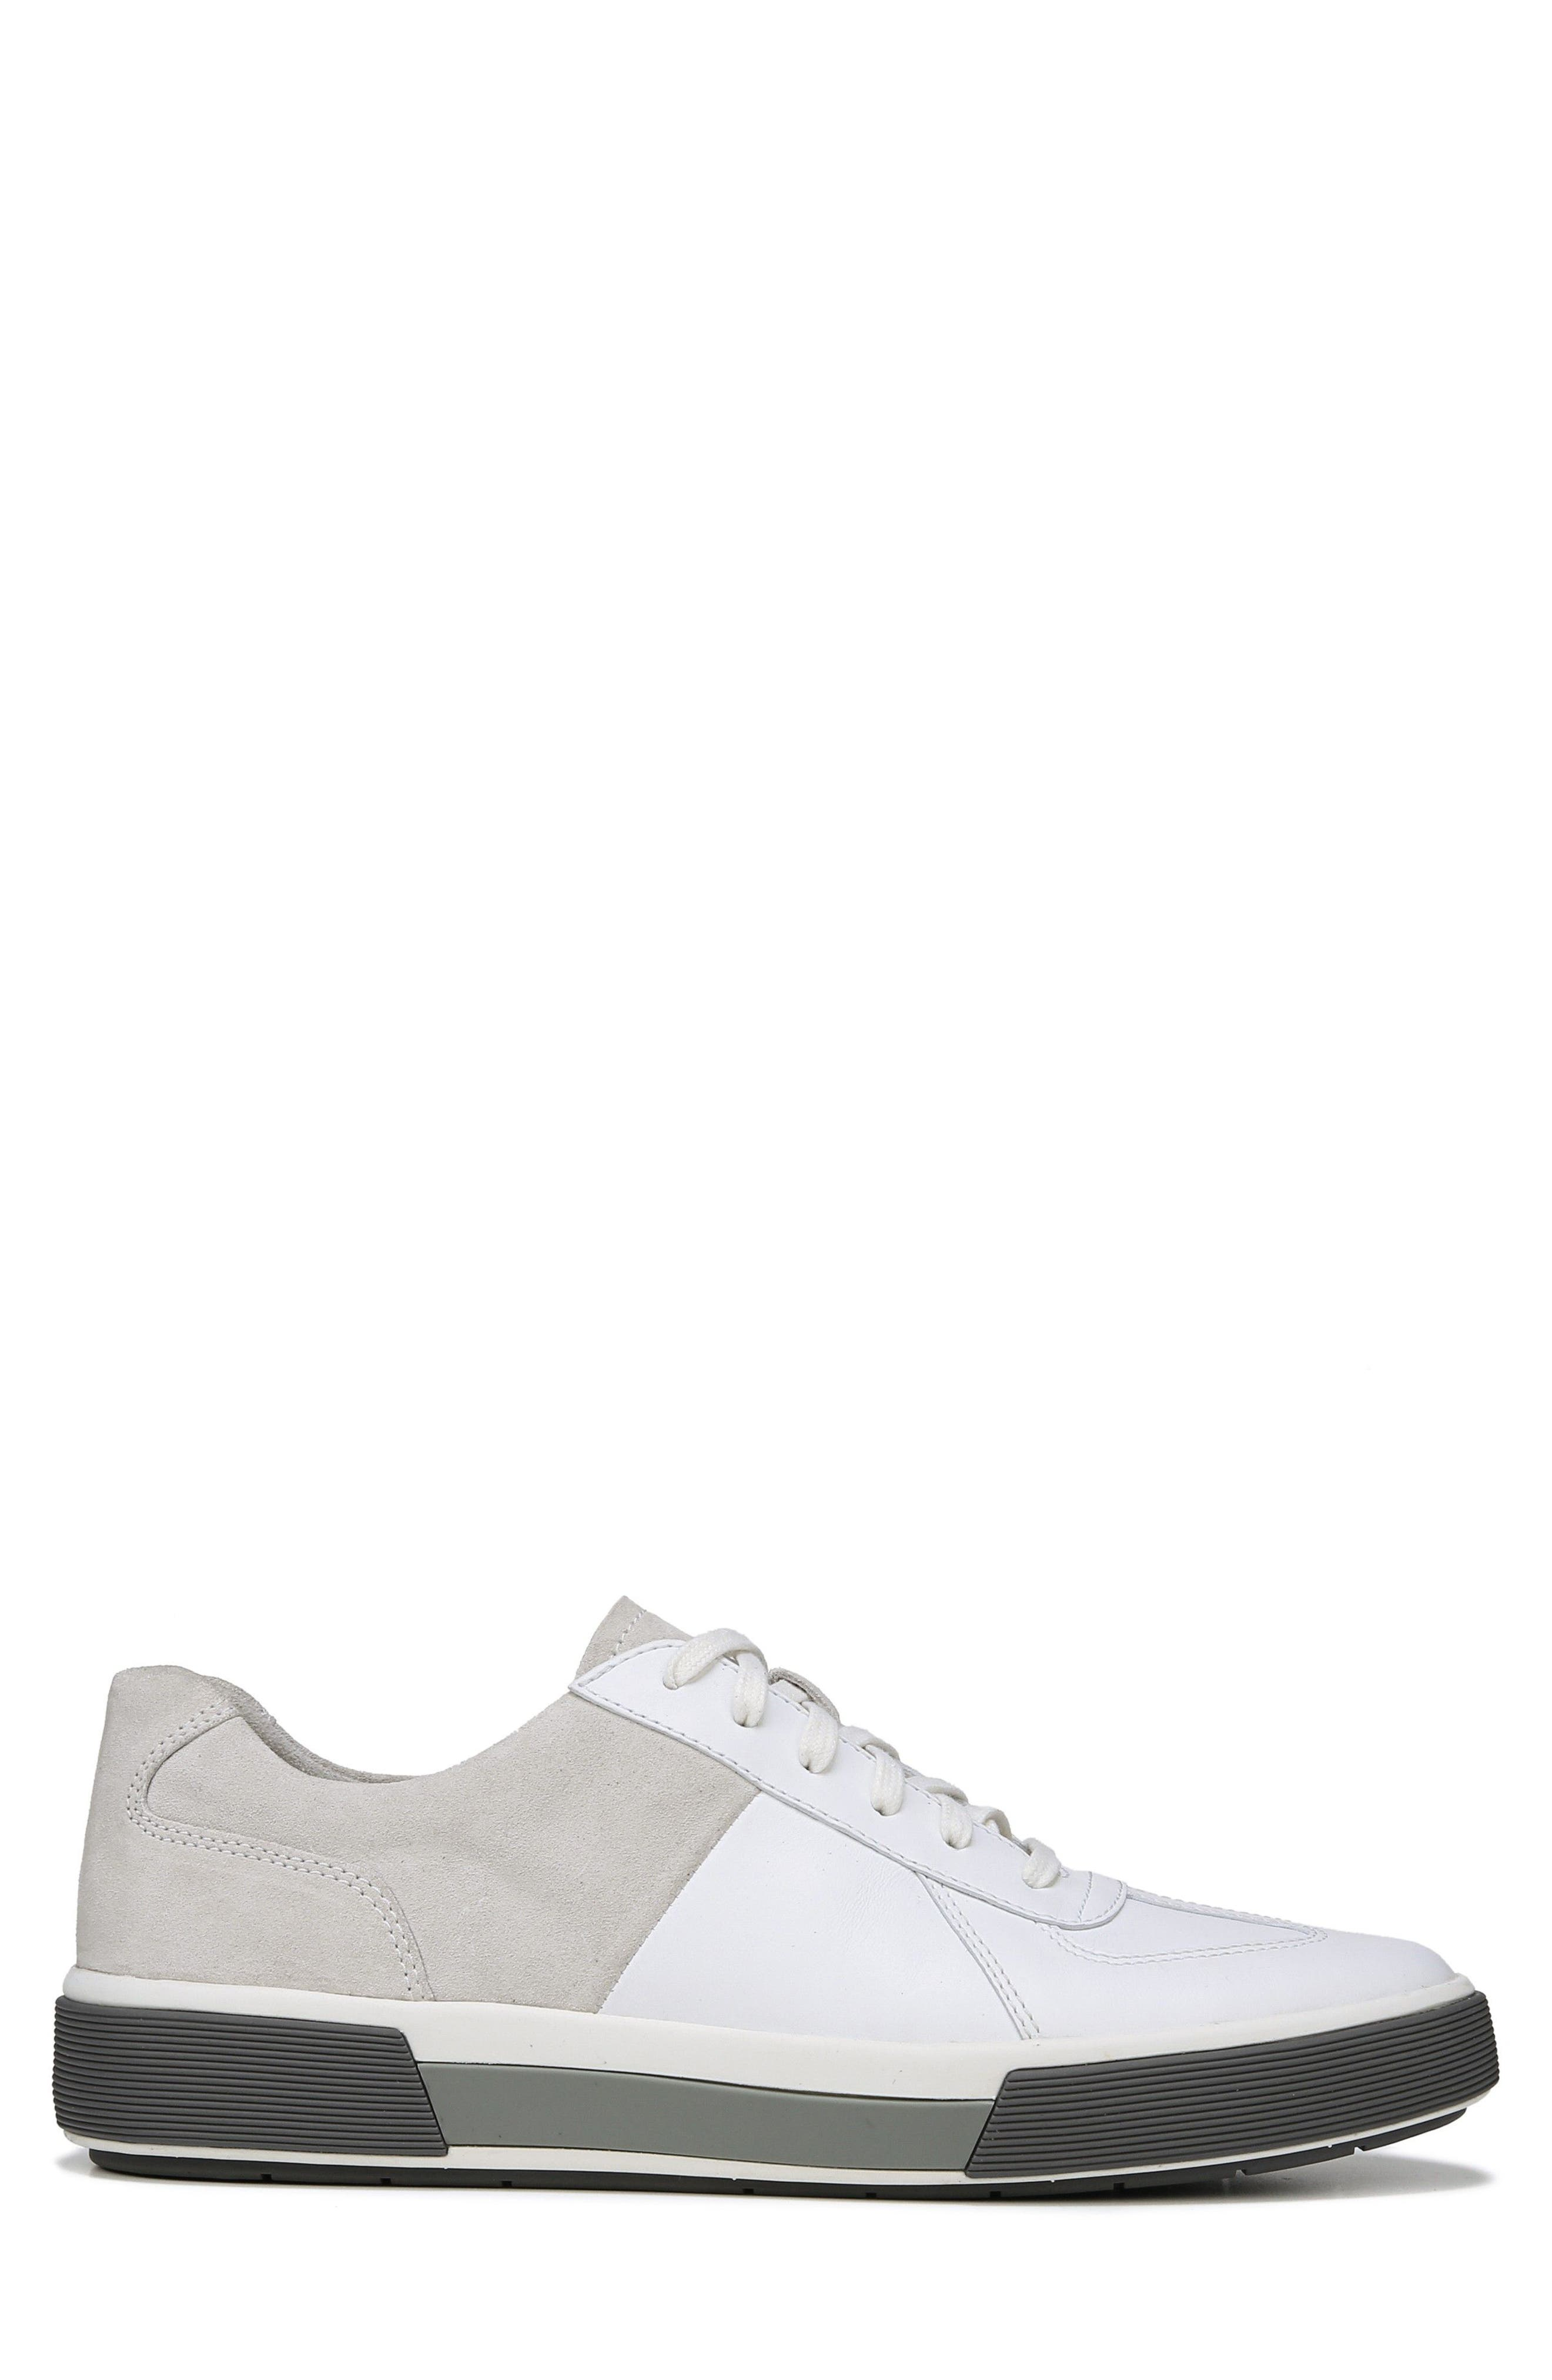 Rogue Low Top Sneaker,                             Alternate thumbnail 3, color,                             White/ Horchata